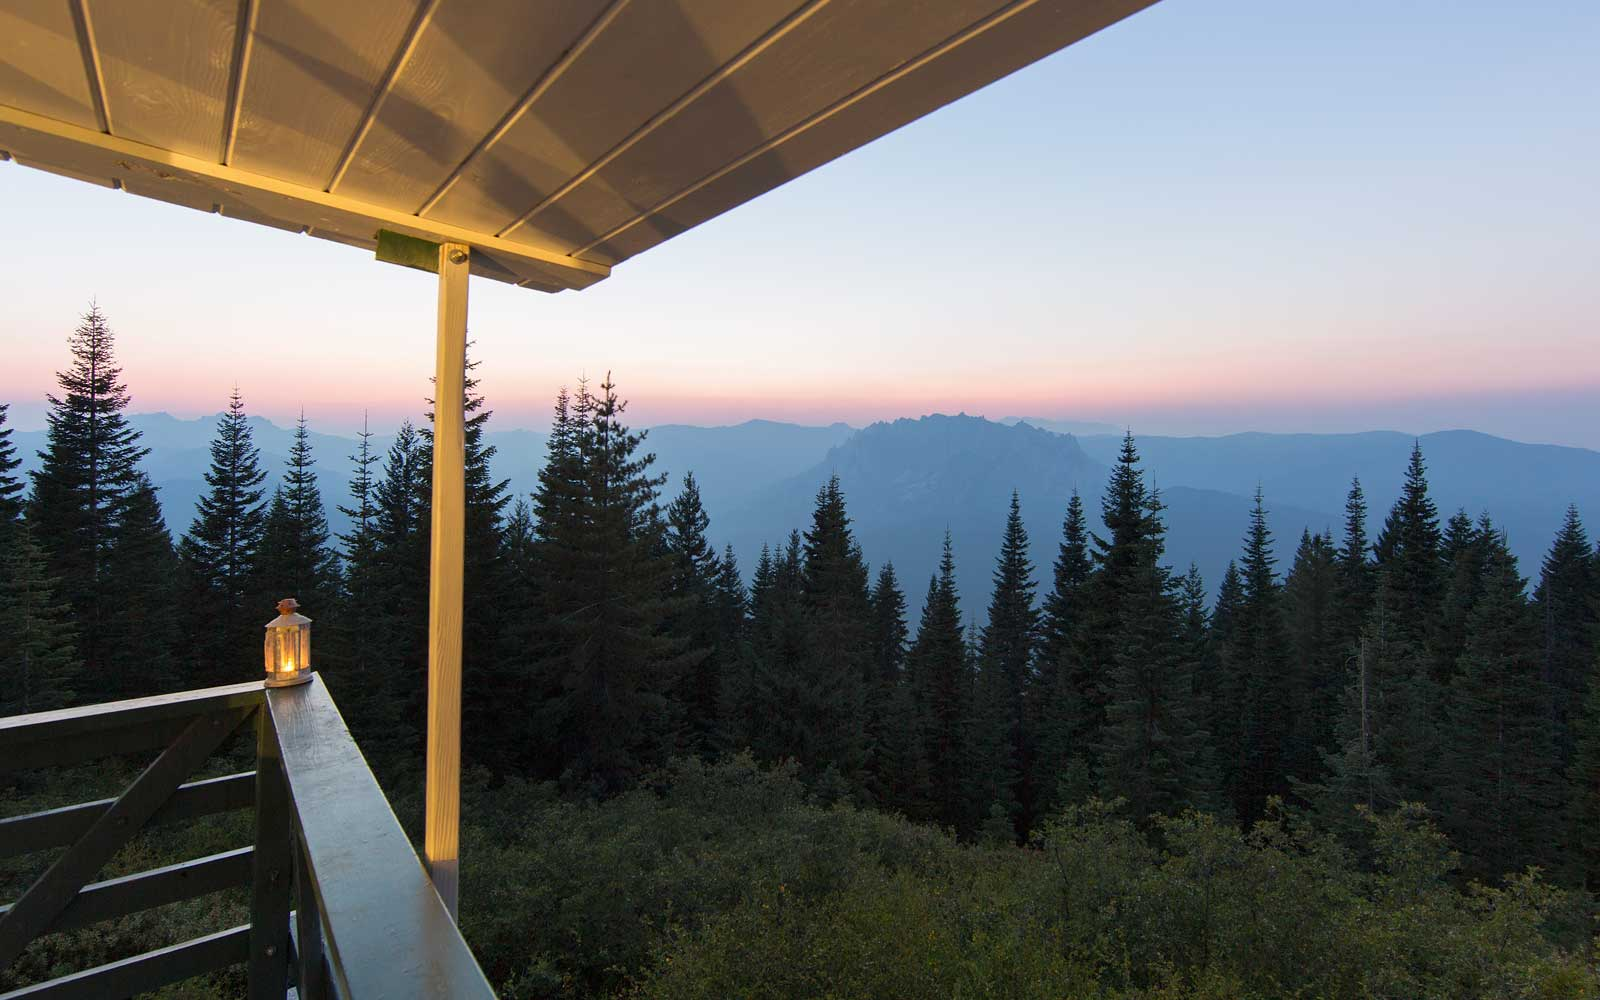 You Can Camp Above the Trees in These Fire Towers